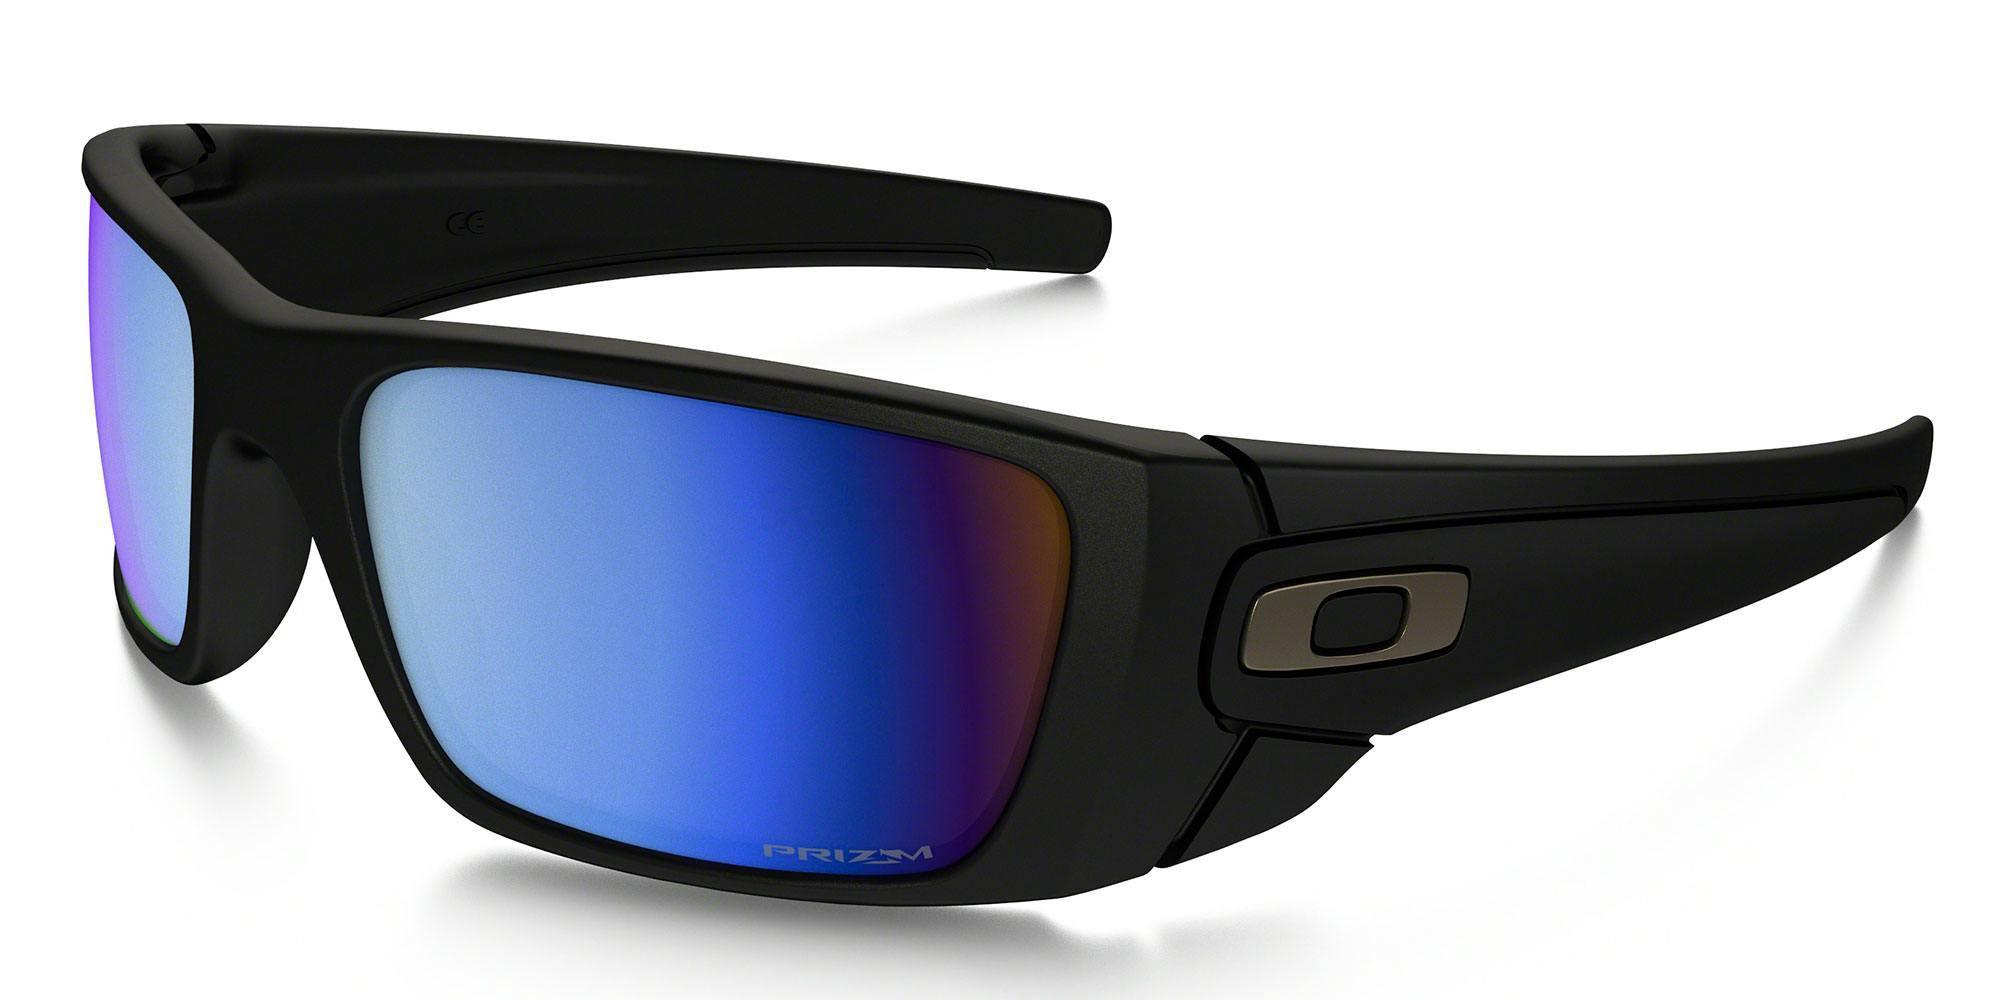 9096D8 OO9096 PRIZM DEEP WATER POLARIZED FUEL CELL Sunglasses, Oakley